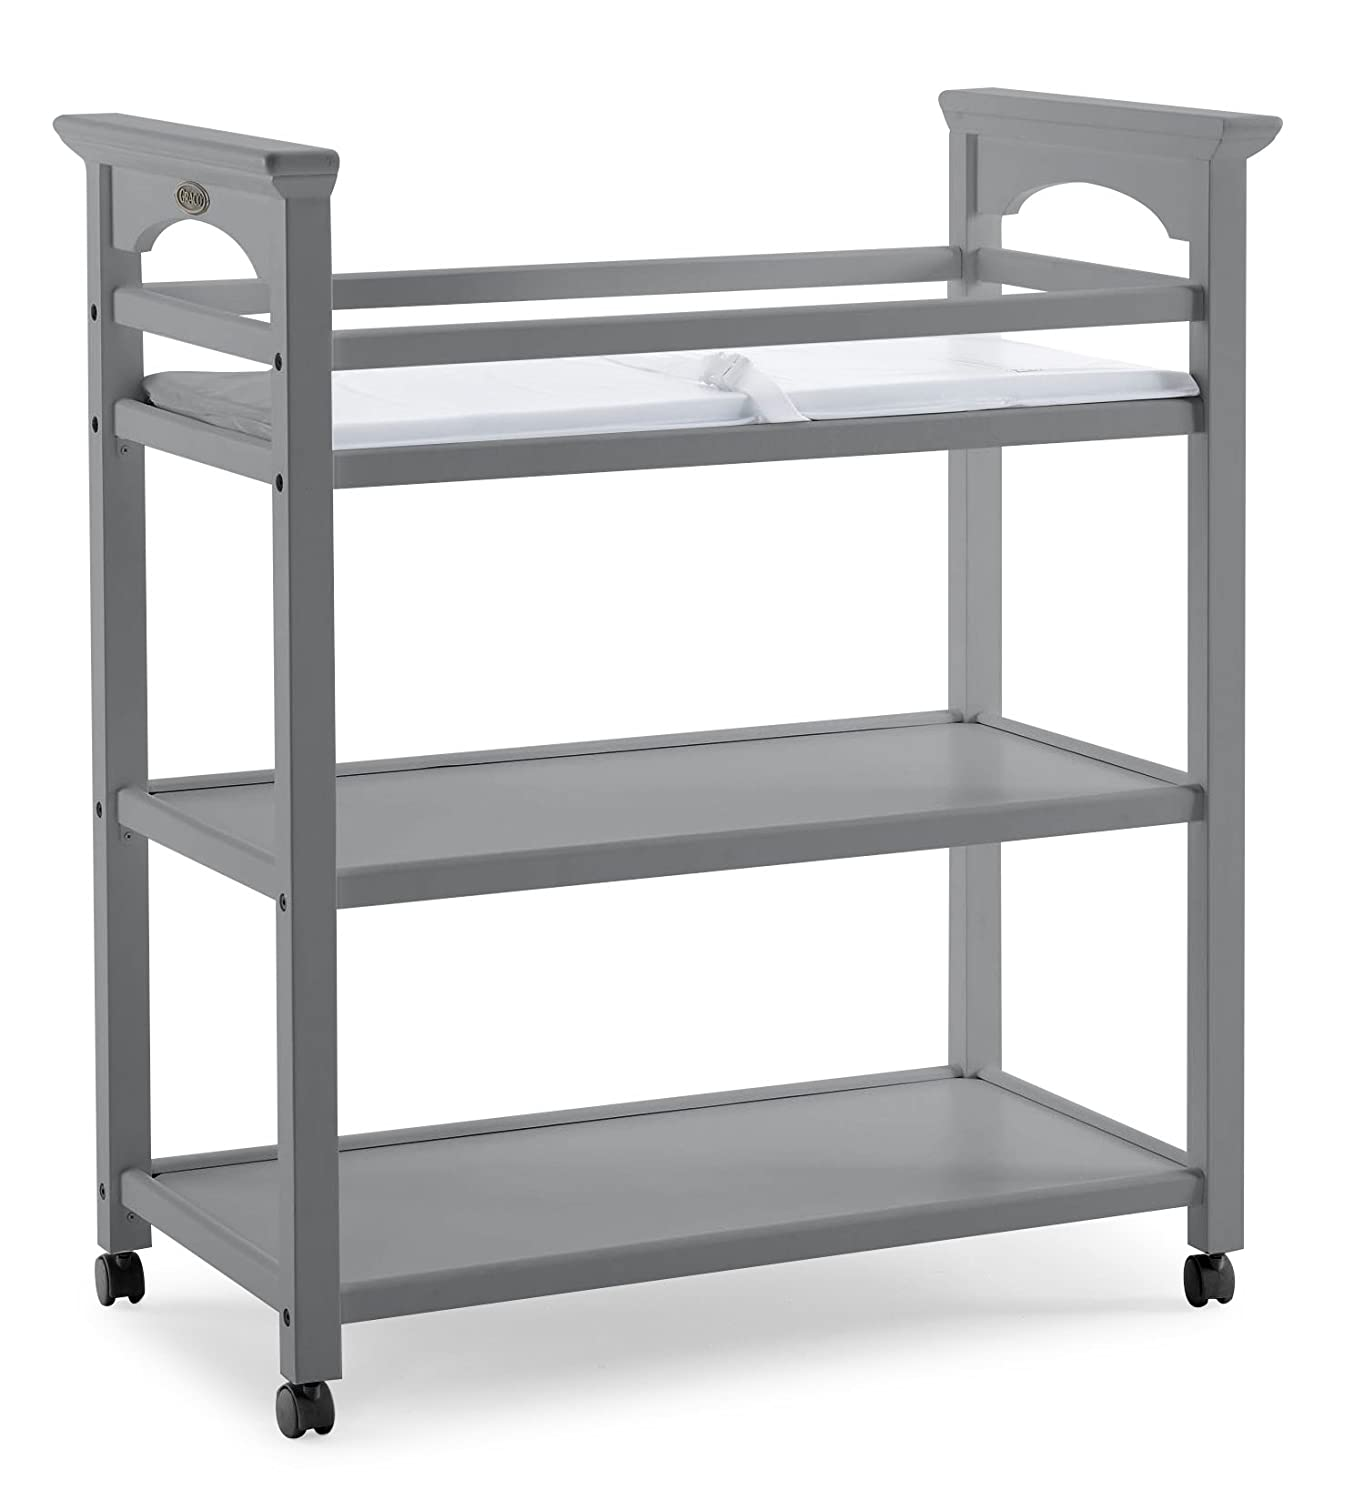 Graco Lauren Changing Table, Espresso Changing Table with Changing Pad and Safety Strap, Two Storage Shelves 00524-429